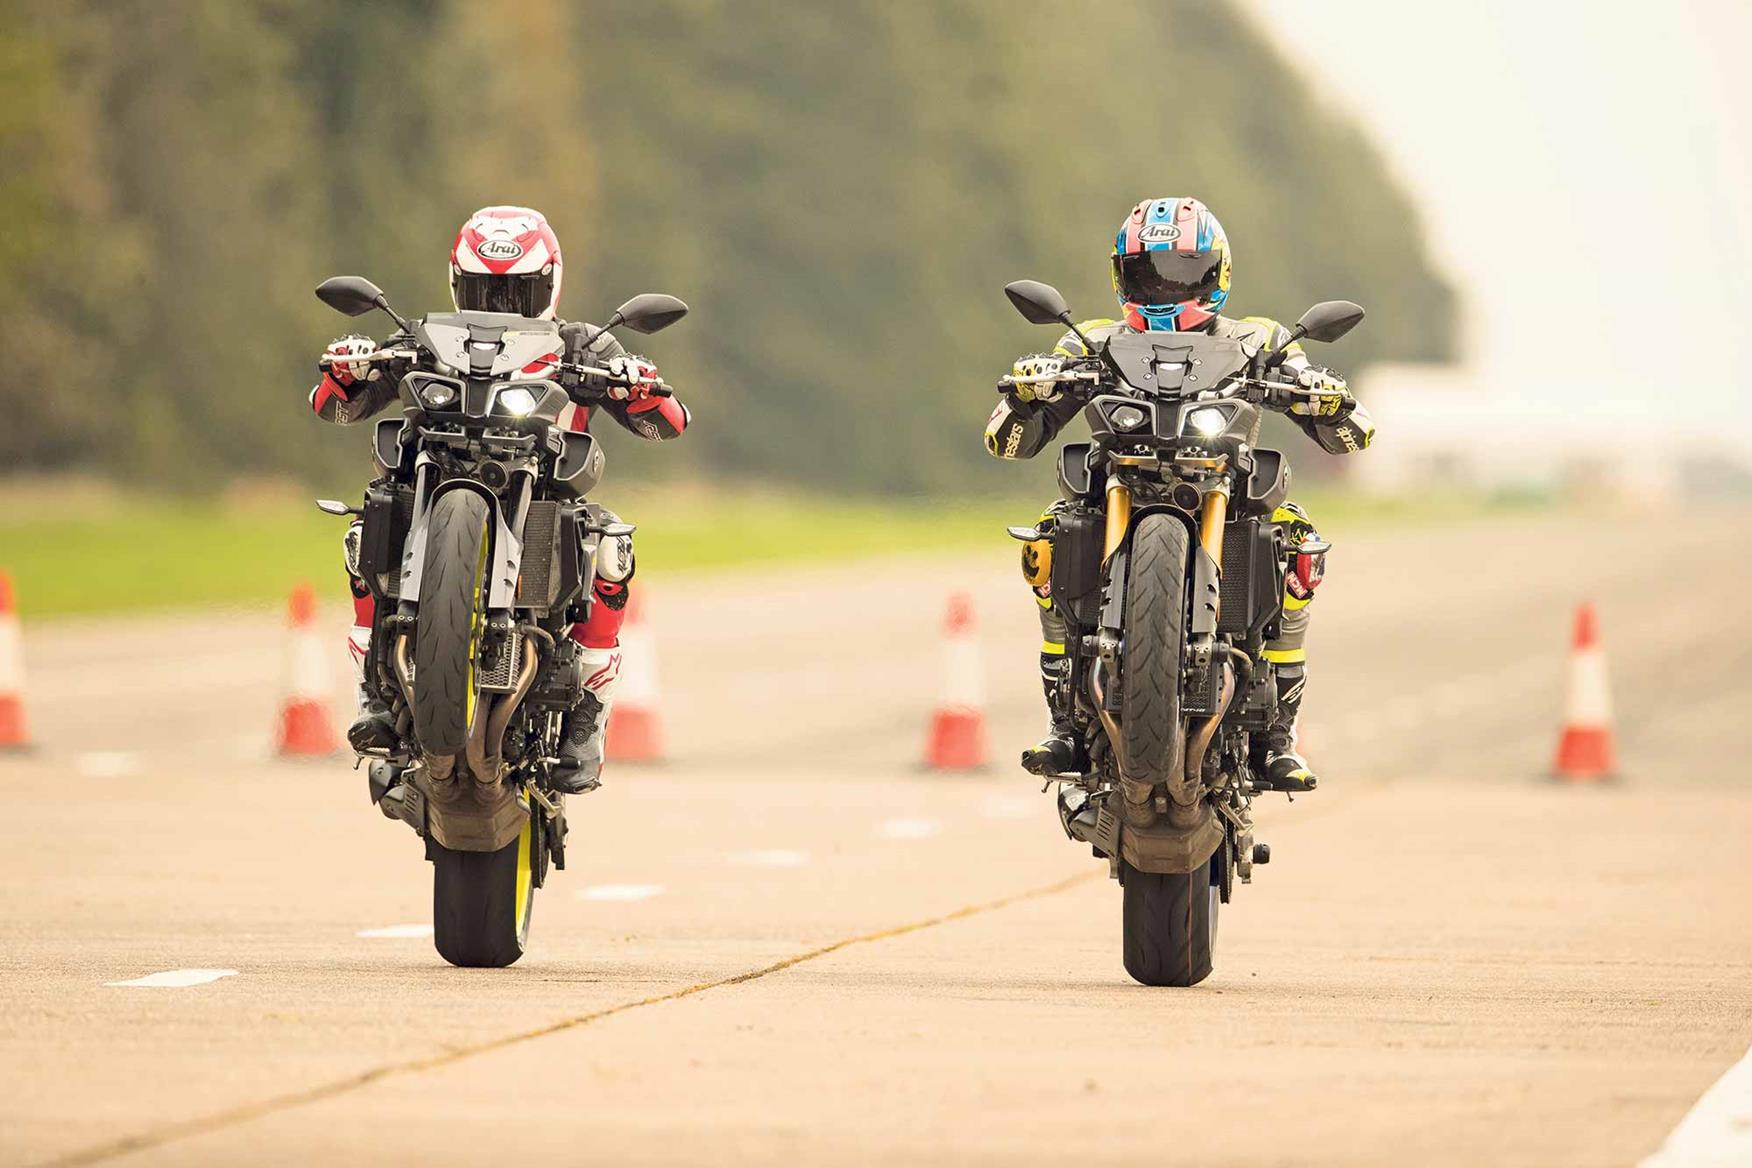 Popping a wheelie on the Yamaha MT-10 and MT 10 SP